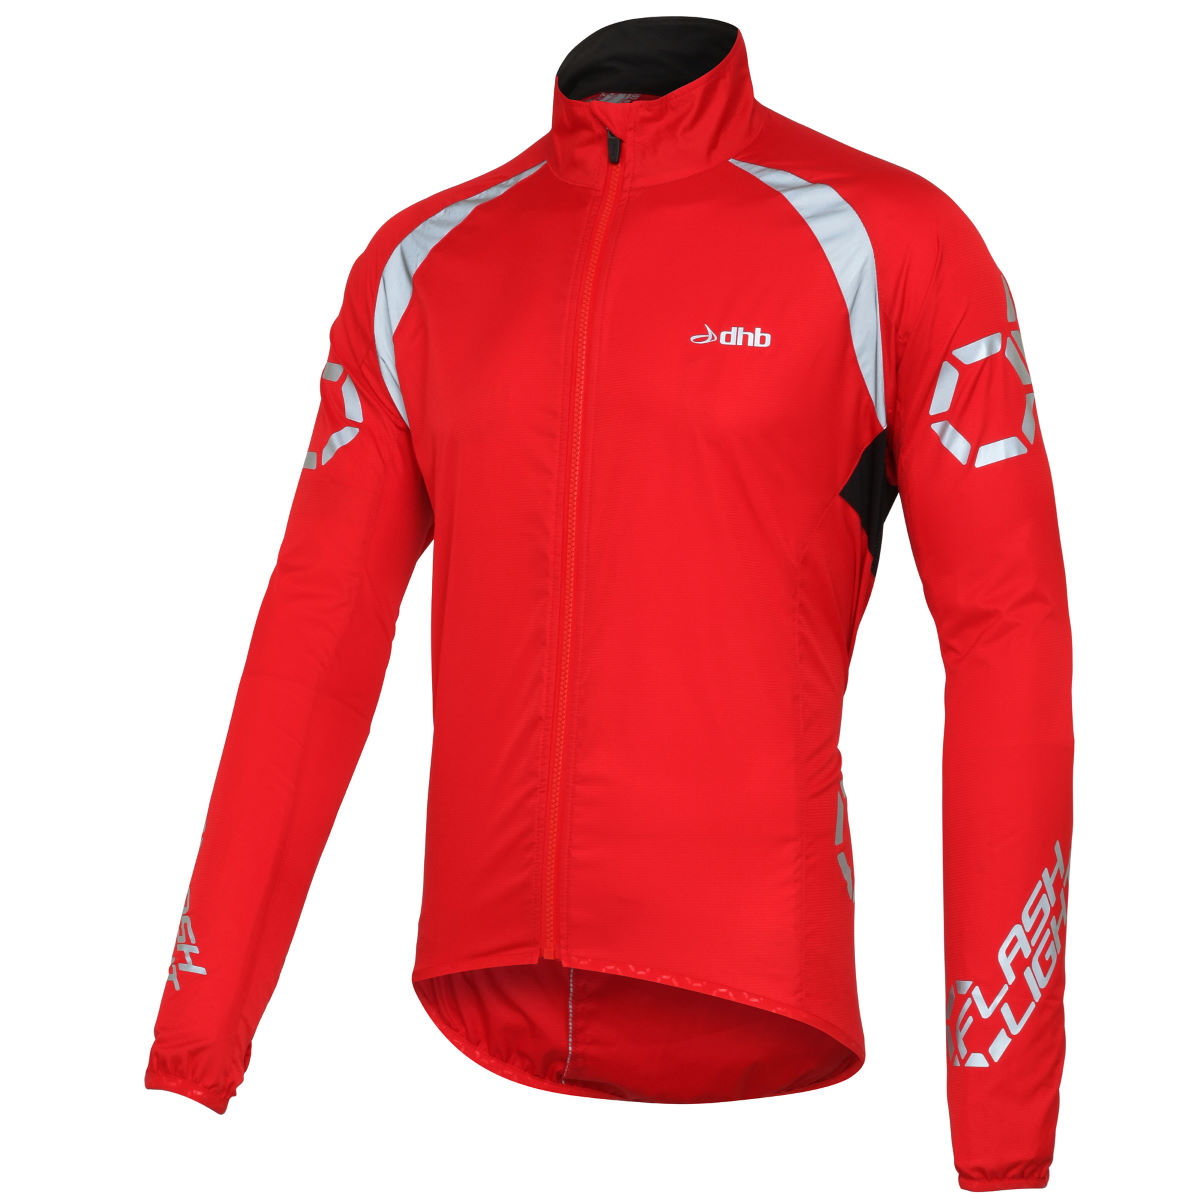 Veste dhb Flashlight (coupe-vent) - XS Rouge Coupe-vents vélo